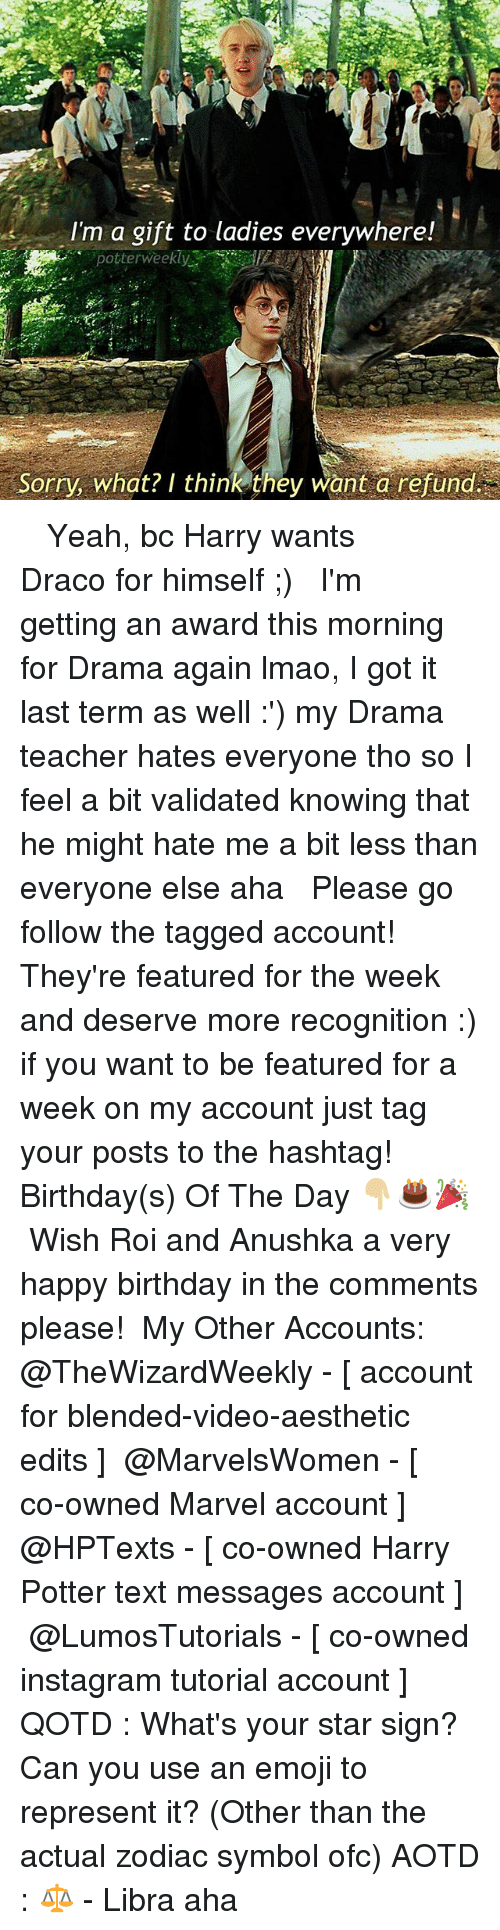 Birthday, Emoji, and Harry Potter: I'm a gift to ladies everywhere!  potterweekly  Sorry, what? I think they want a refund ✎✐✎ ↯ ⇢ Yeah, bc Harry wants Draco for himself ;) ↯ ⇢ I'm getting an award this morning for Drama again lmao, I got it last term as well :') my Drama teacher hates everyone tho so I feel a bit validated knowing that he might hate me a bit less than everyone else aha ↯ ⇢ Please go follow the tagged account! They're featured for the week and deserve more recognition :) if you want to be featured for a week on my account just tag your posts to the hashtag! ✎✐✎ Birthday(s) Of The Day 👇🏼🎂🎉 ⇢ Wish Roi and Anushka a very happy birthday in the comments please! ✎✐✎ My Other Accounts: ⇢ @TheWizardWeekly - [ account for blended-video-aesthetic edits ] ⇢ @MarvelsWomen - [ co-owned Marvel account ] ⇢ @HPTexts - [ co-owned Harry Potter text messages account ] ⇢ @LumosTutorials - [ co-owned instagram tutorial account ] ✎✐✎ QOTD : What's your star sign? Can you use an emoji to represent it? (Other than the actual zodiac symbol ofc) AOTD : ⚖️ - Libra aha